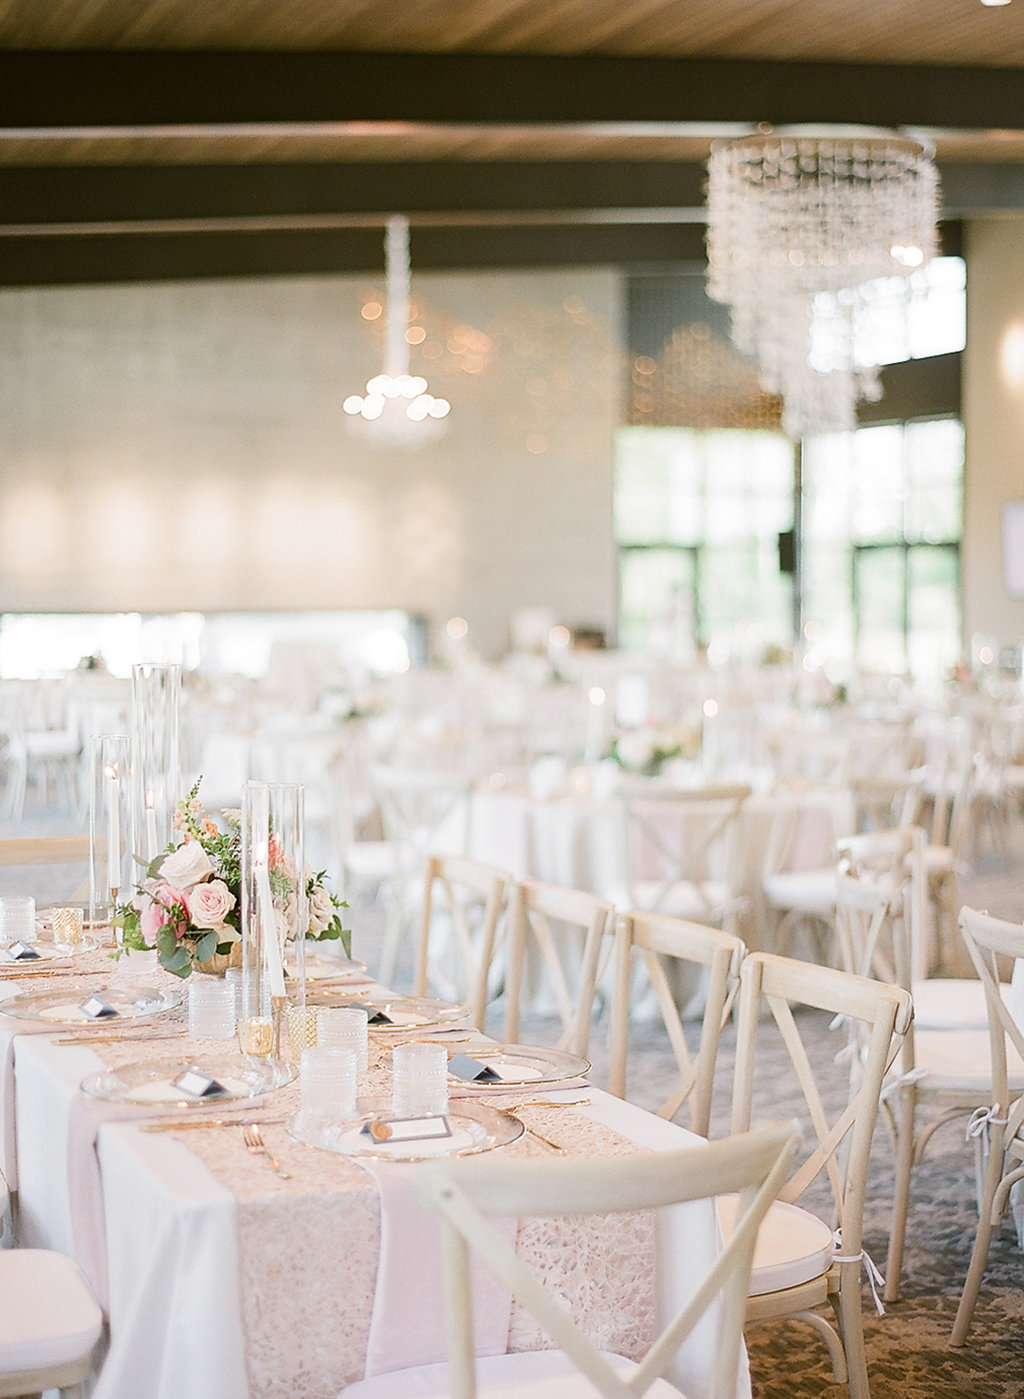 Ampersand Studios, Ira and Lucy Wedding Planner, Boise Wedding Planner